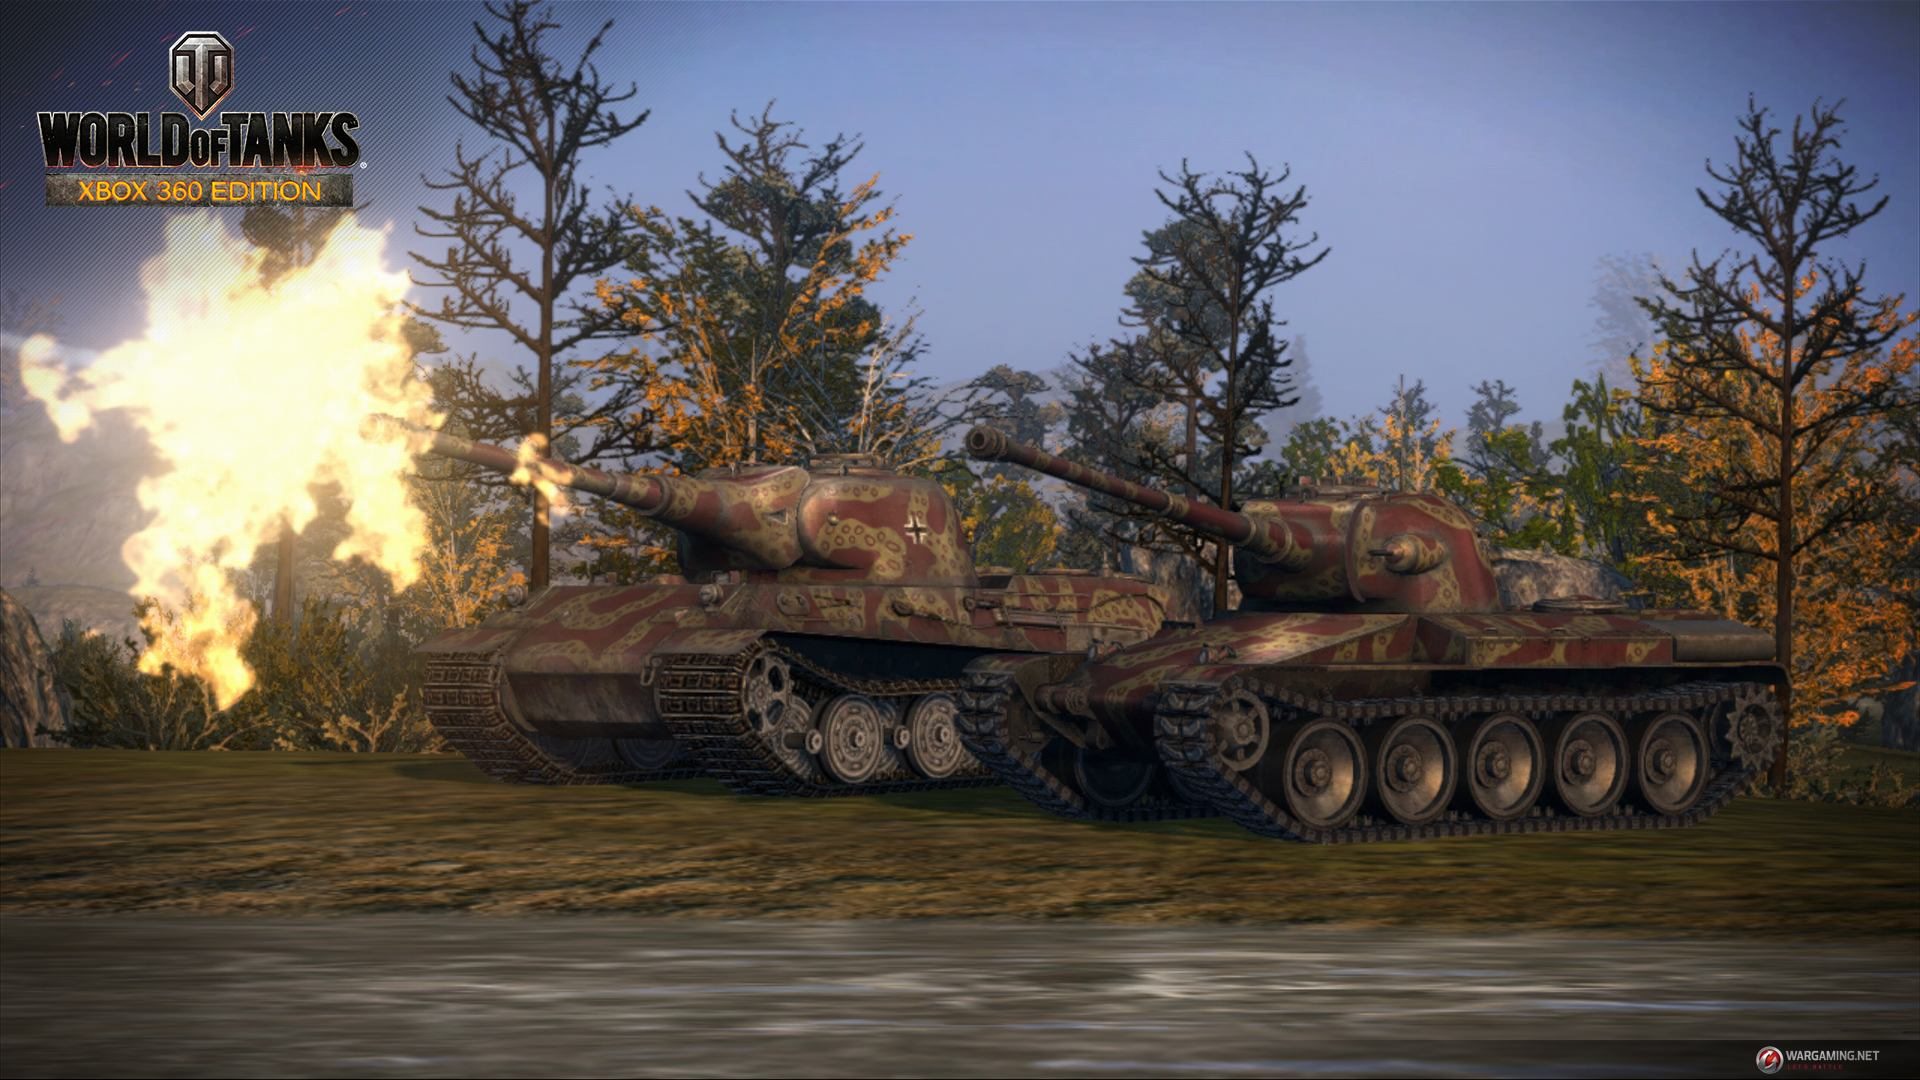 World of Tanks update rolls in with new vehicles and maps